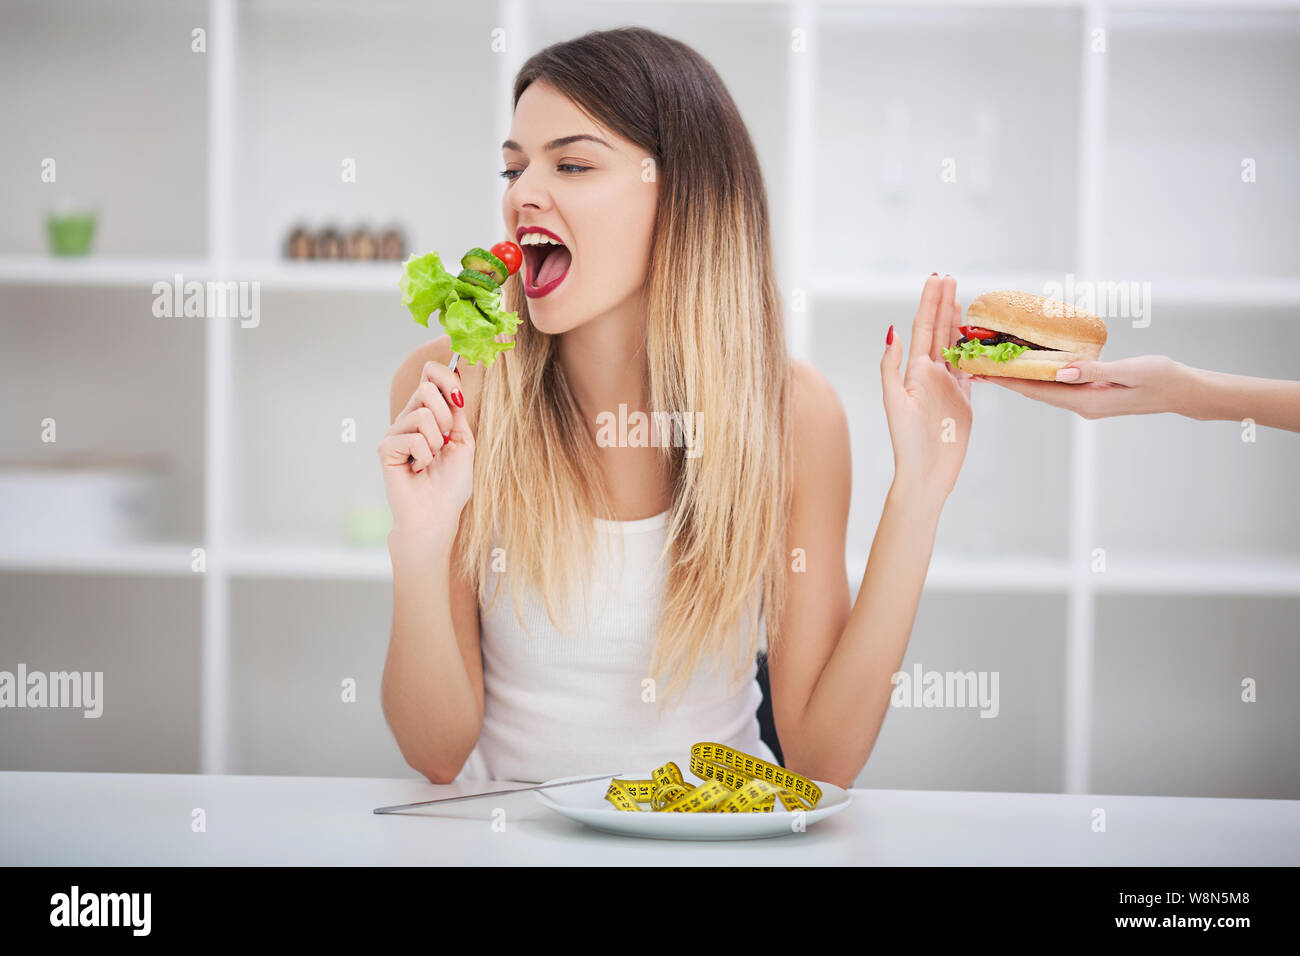 Diet. Healthy eating, dieting, slimming and weigh loss concept. Dieting concept. Weight Loss. The measuring tape is wrapped around the arm. In the Stock Photo